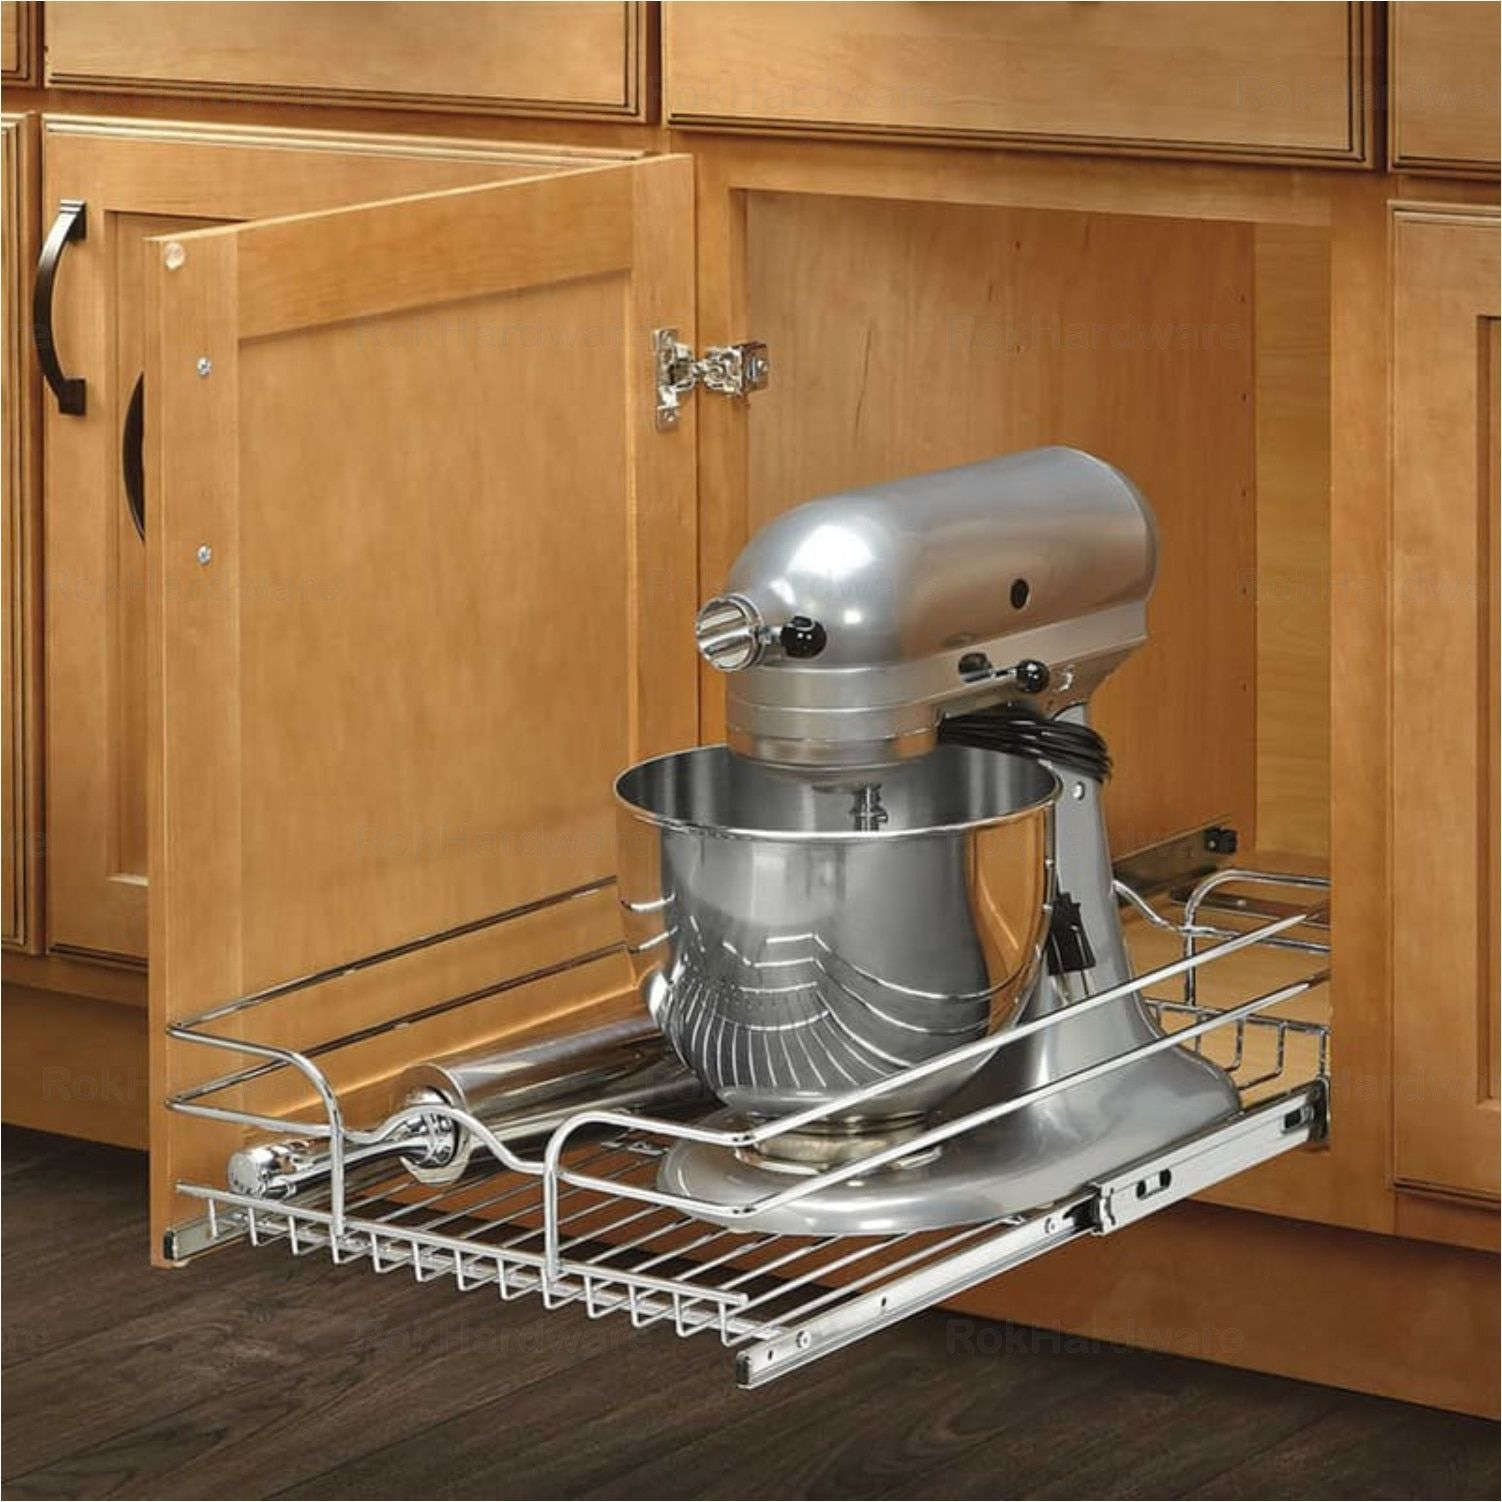 Overstock Com Online Shopping Bedding Furniture Electronics Jewelry Clothing More In 2021 Rev A Shelf Kitchen Cabinet Pulls Wire Baskets